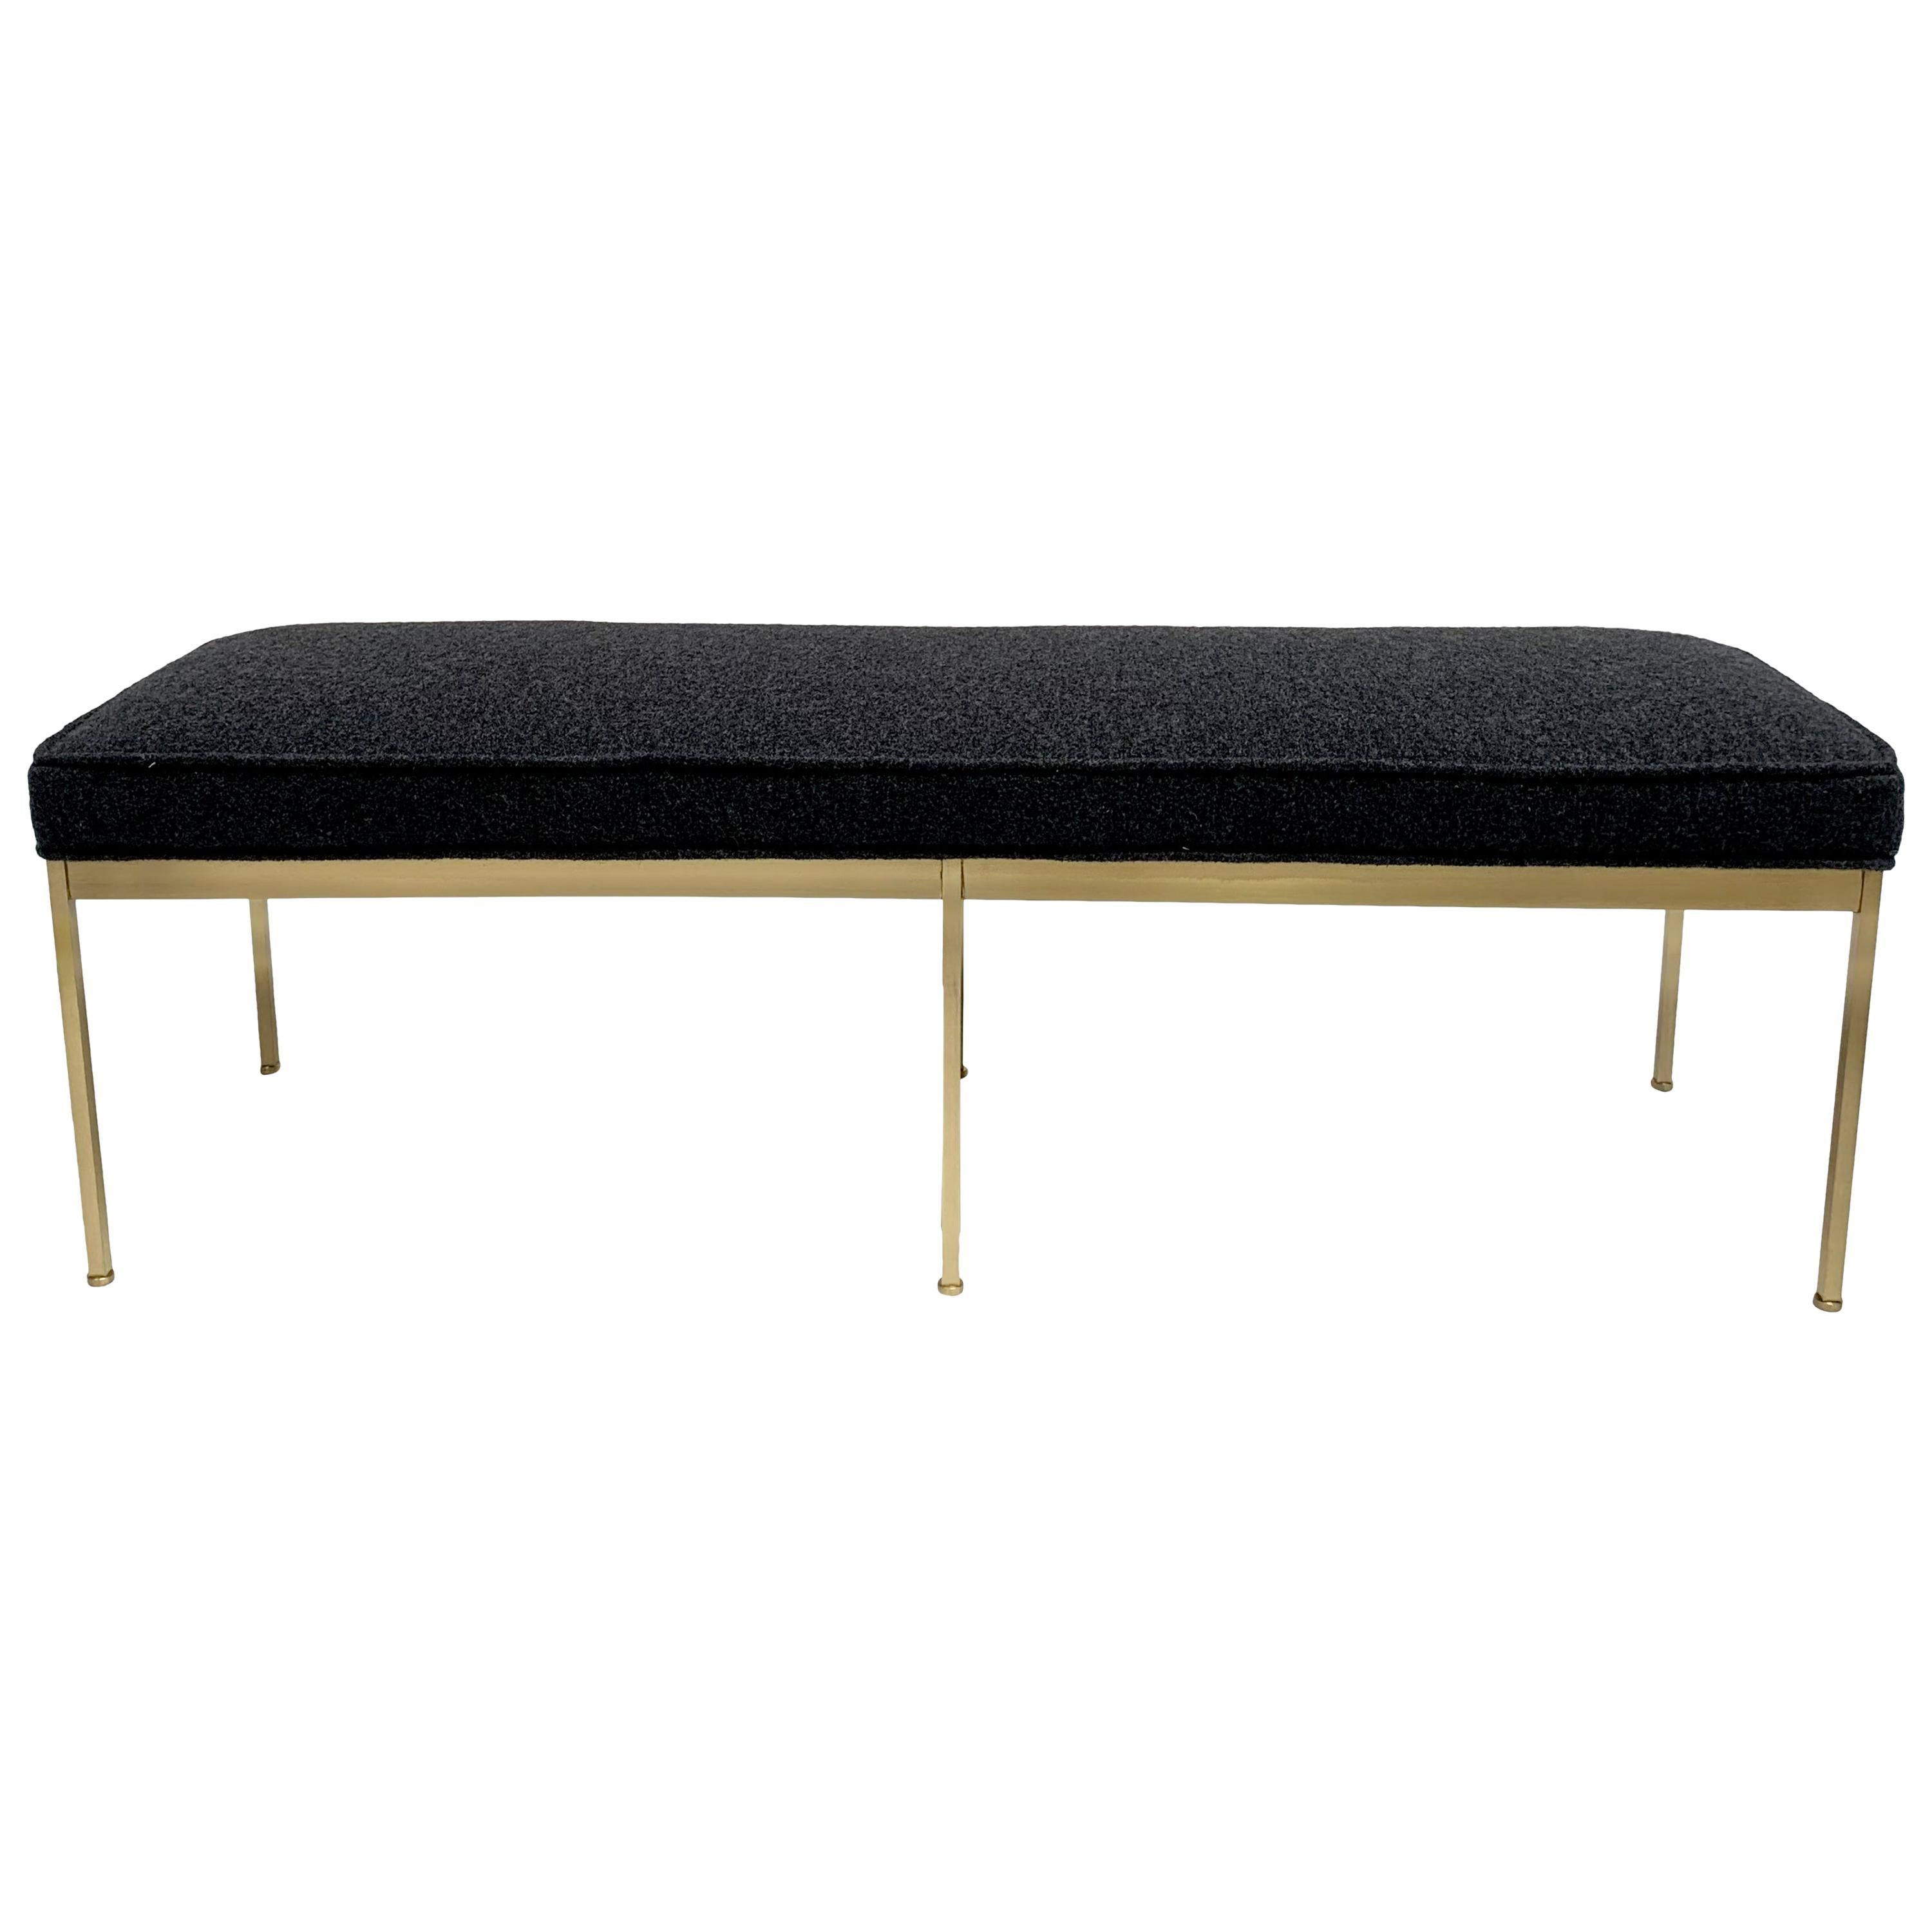 Grey Boiled Wool and Satin Brass Paul Bench by Lawson-Fenning